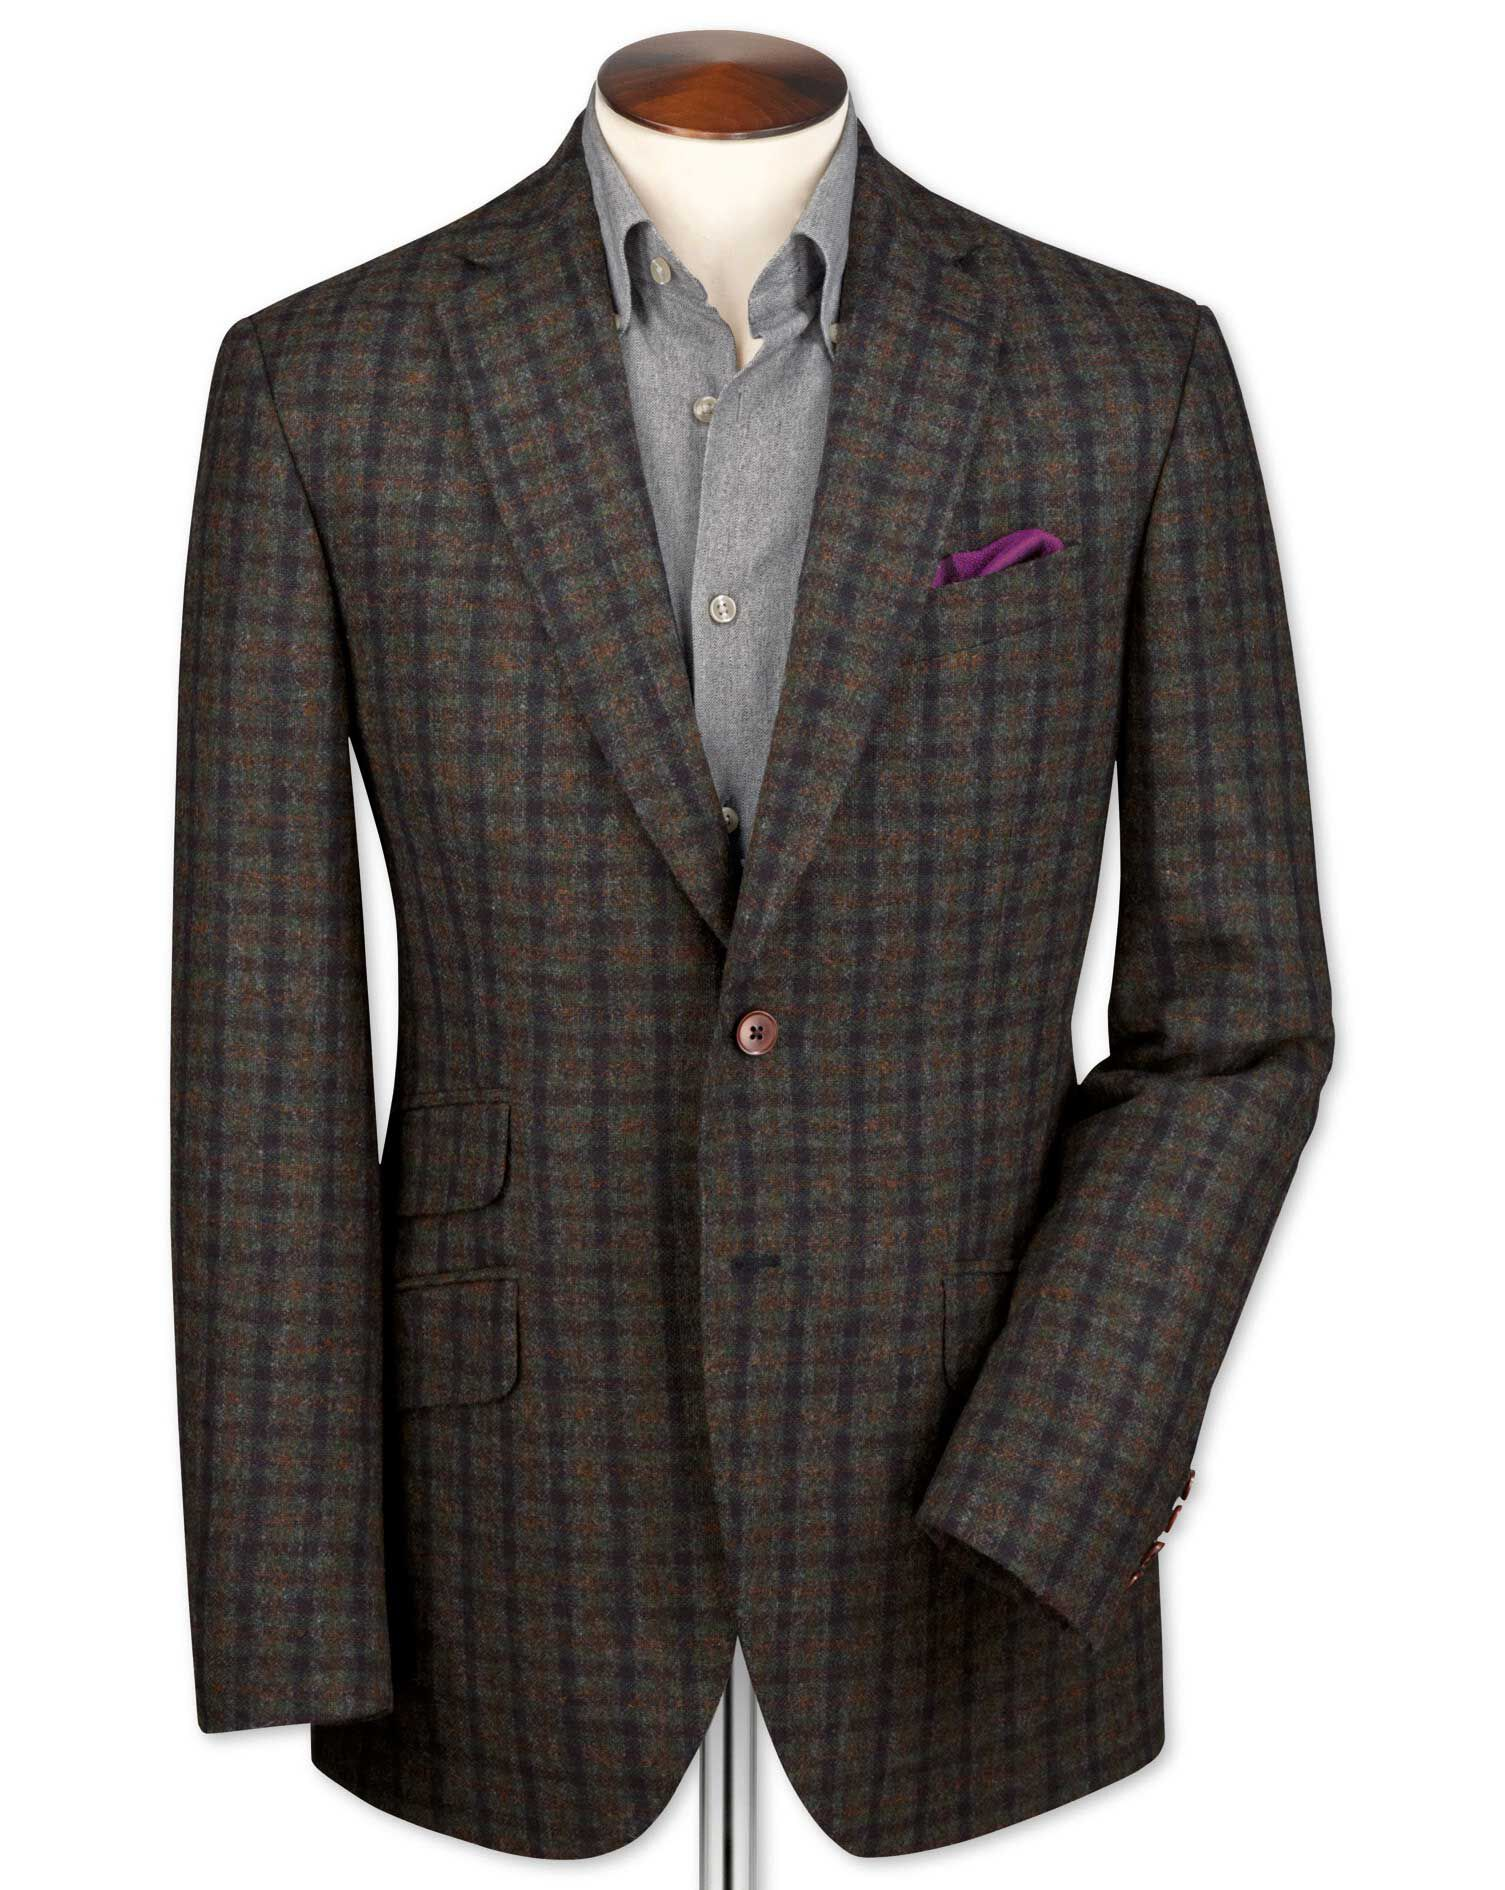 Slim Fit Green and Navy Checkered Luxury British Tweed Wool Jacket Size 42 by Charles Tyrwhitt